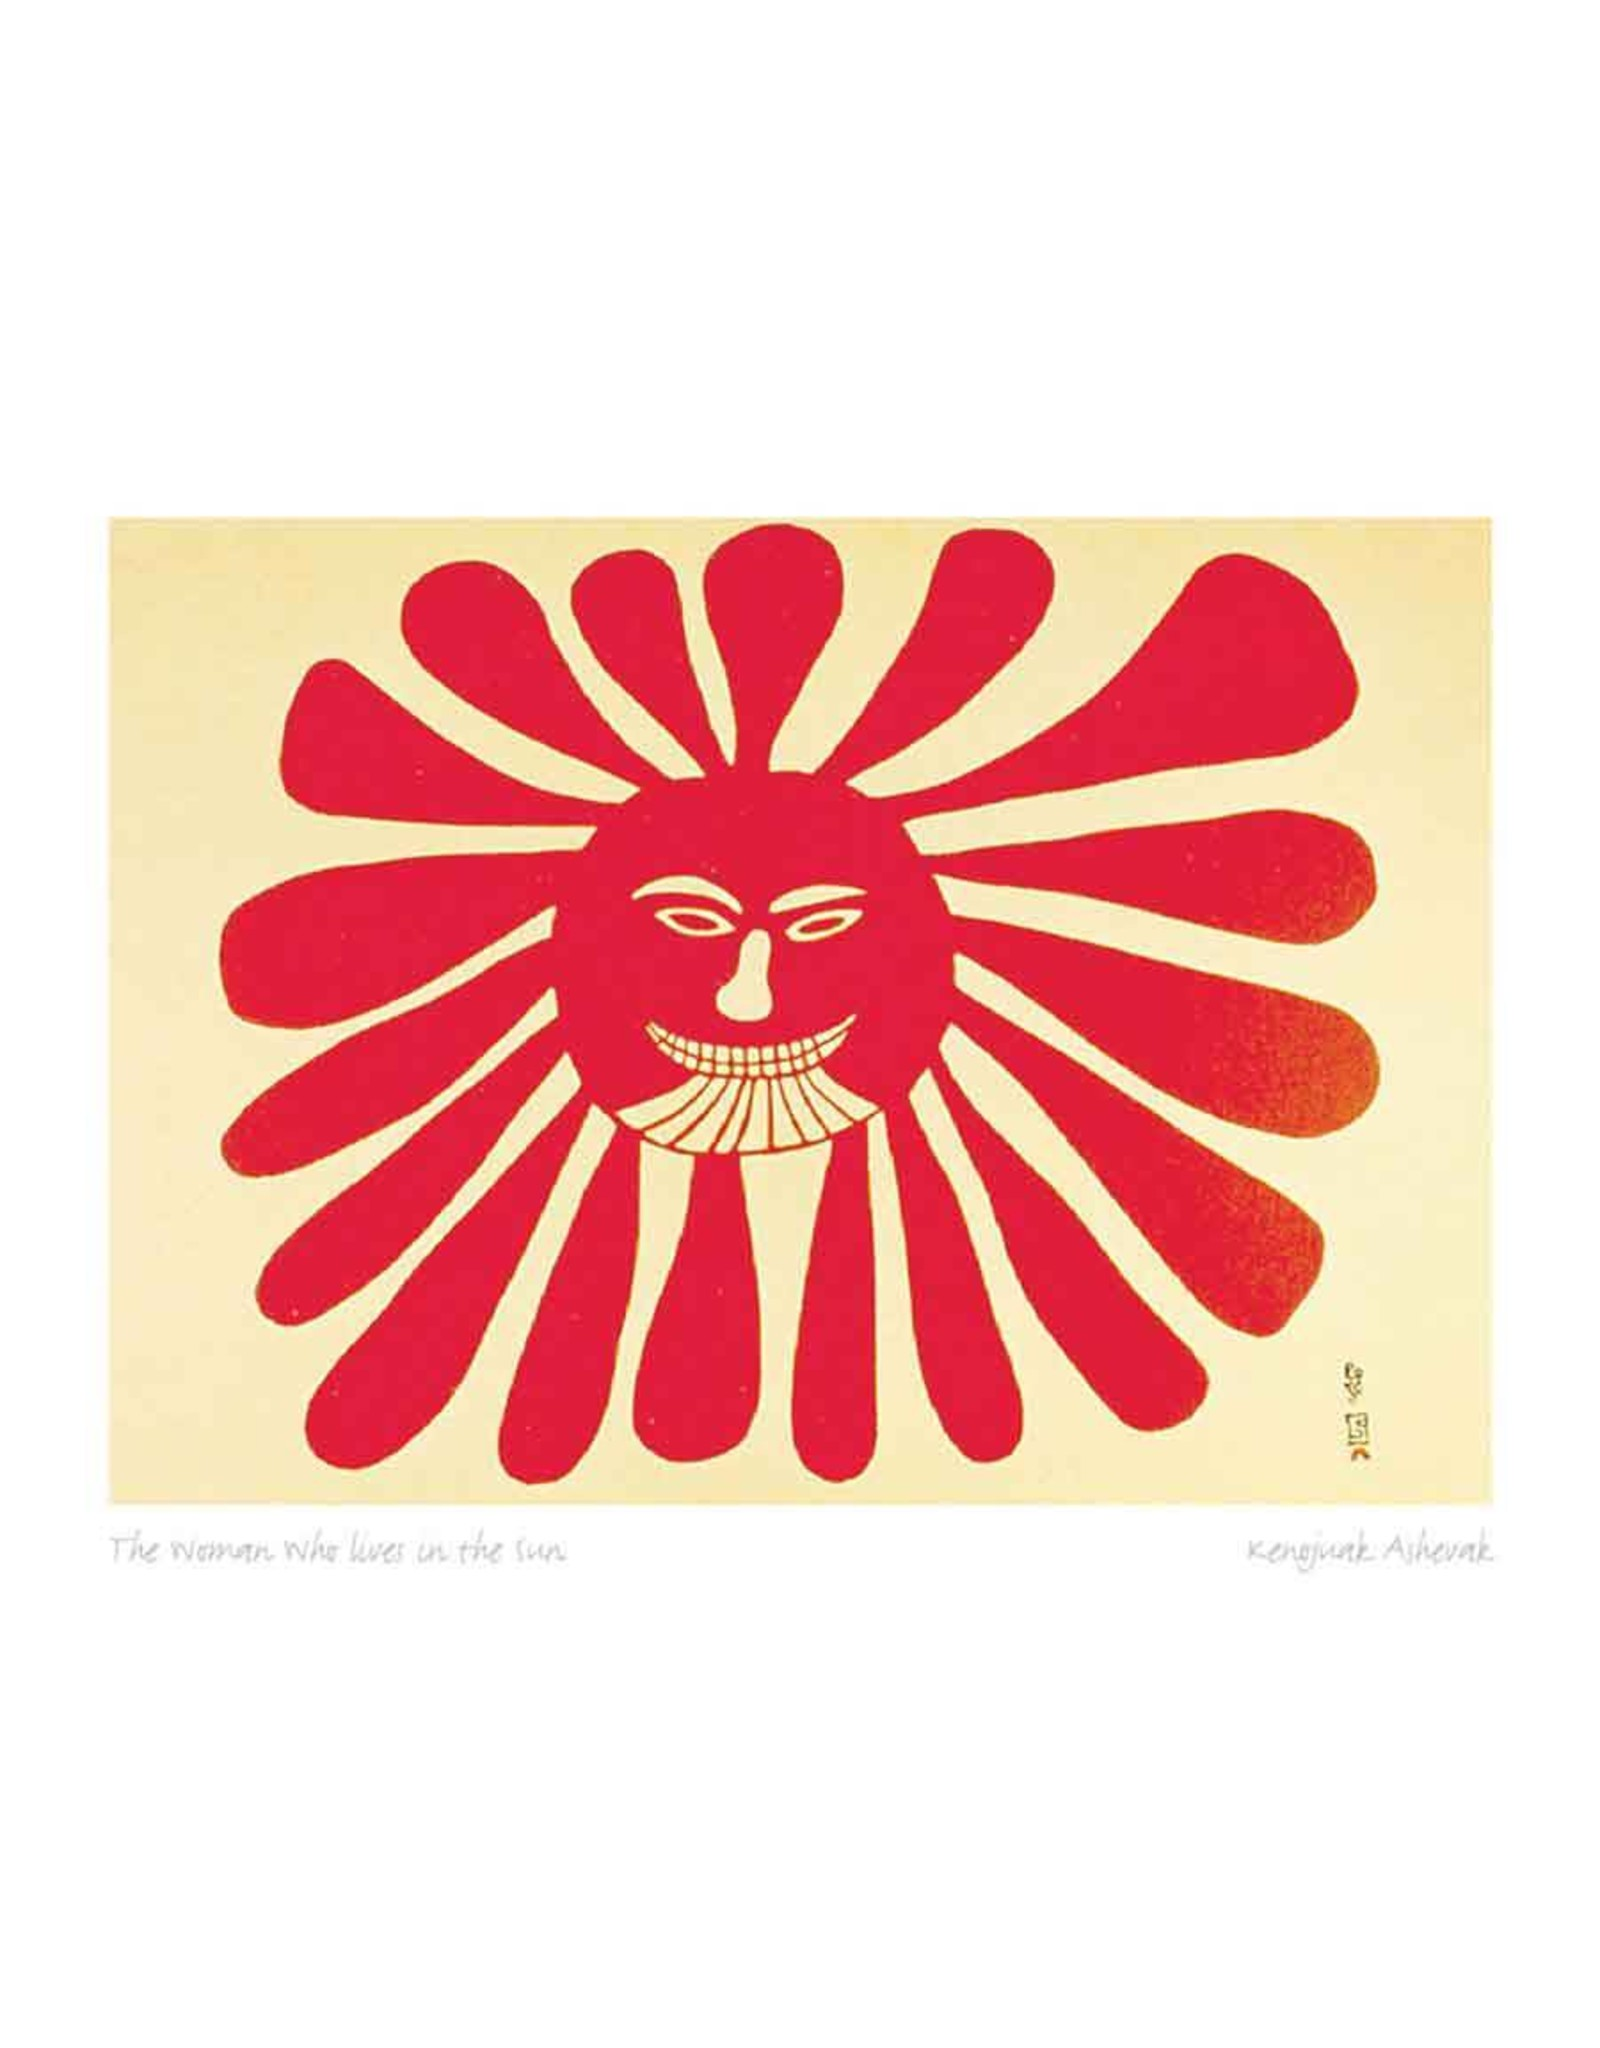 The Woman Who Lives in the Sun by Kenojuak Ashevak Matted